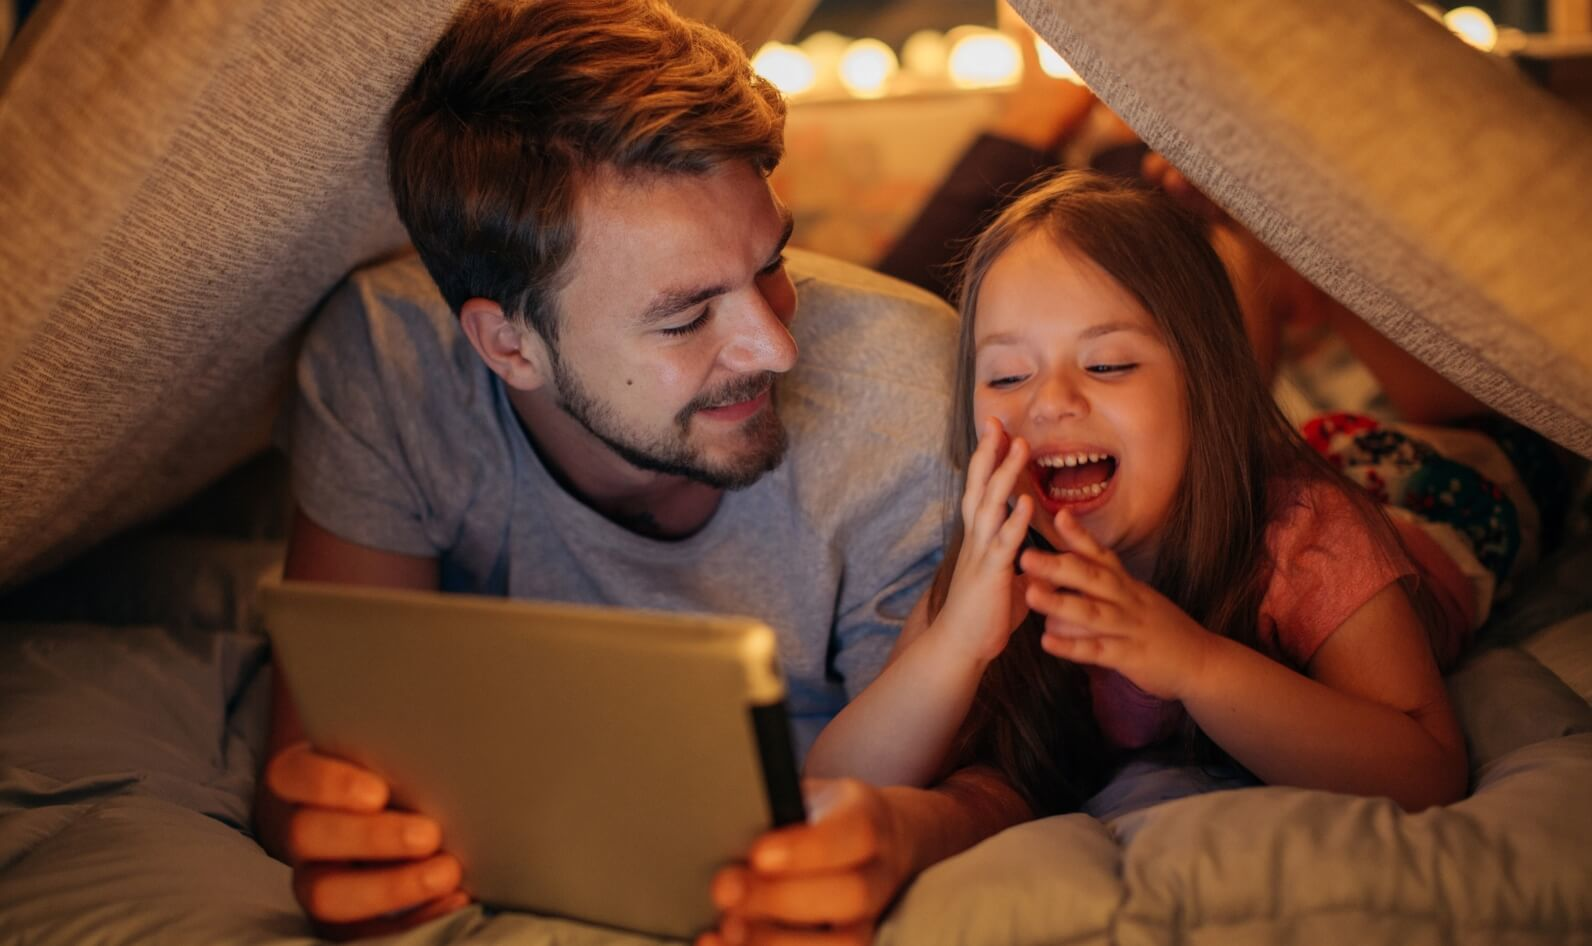 Media Guidelines For Kids Of All Ages >> What Parents Should Know About The New Media Pbs Kids For Parents